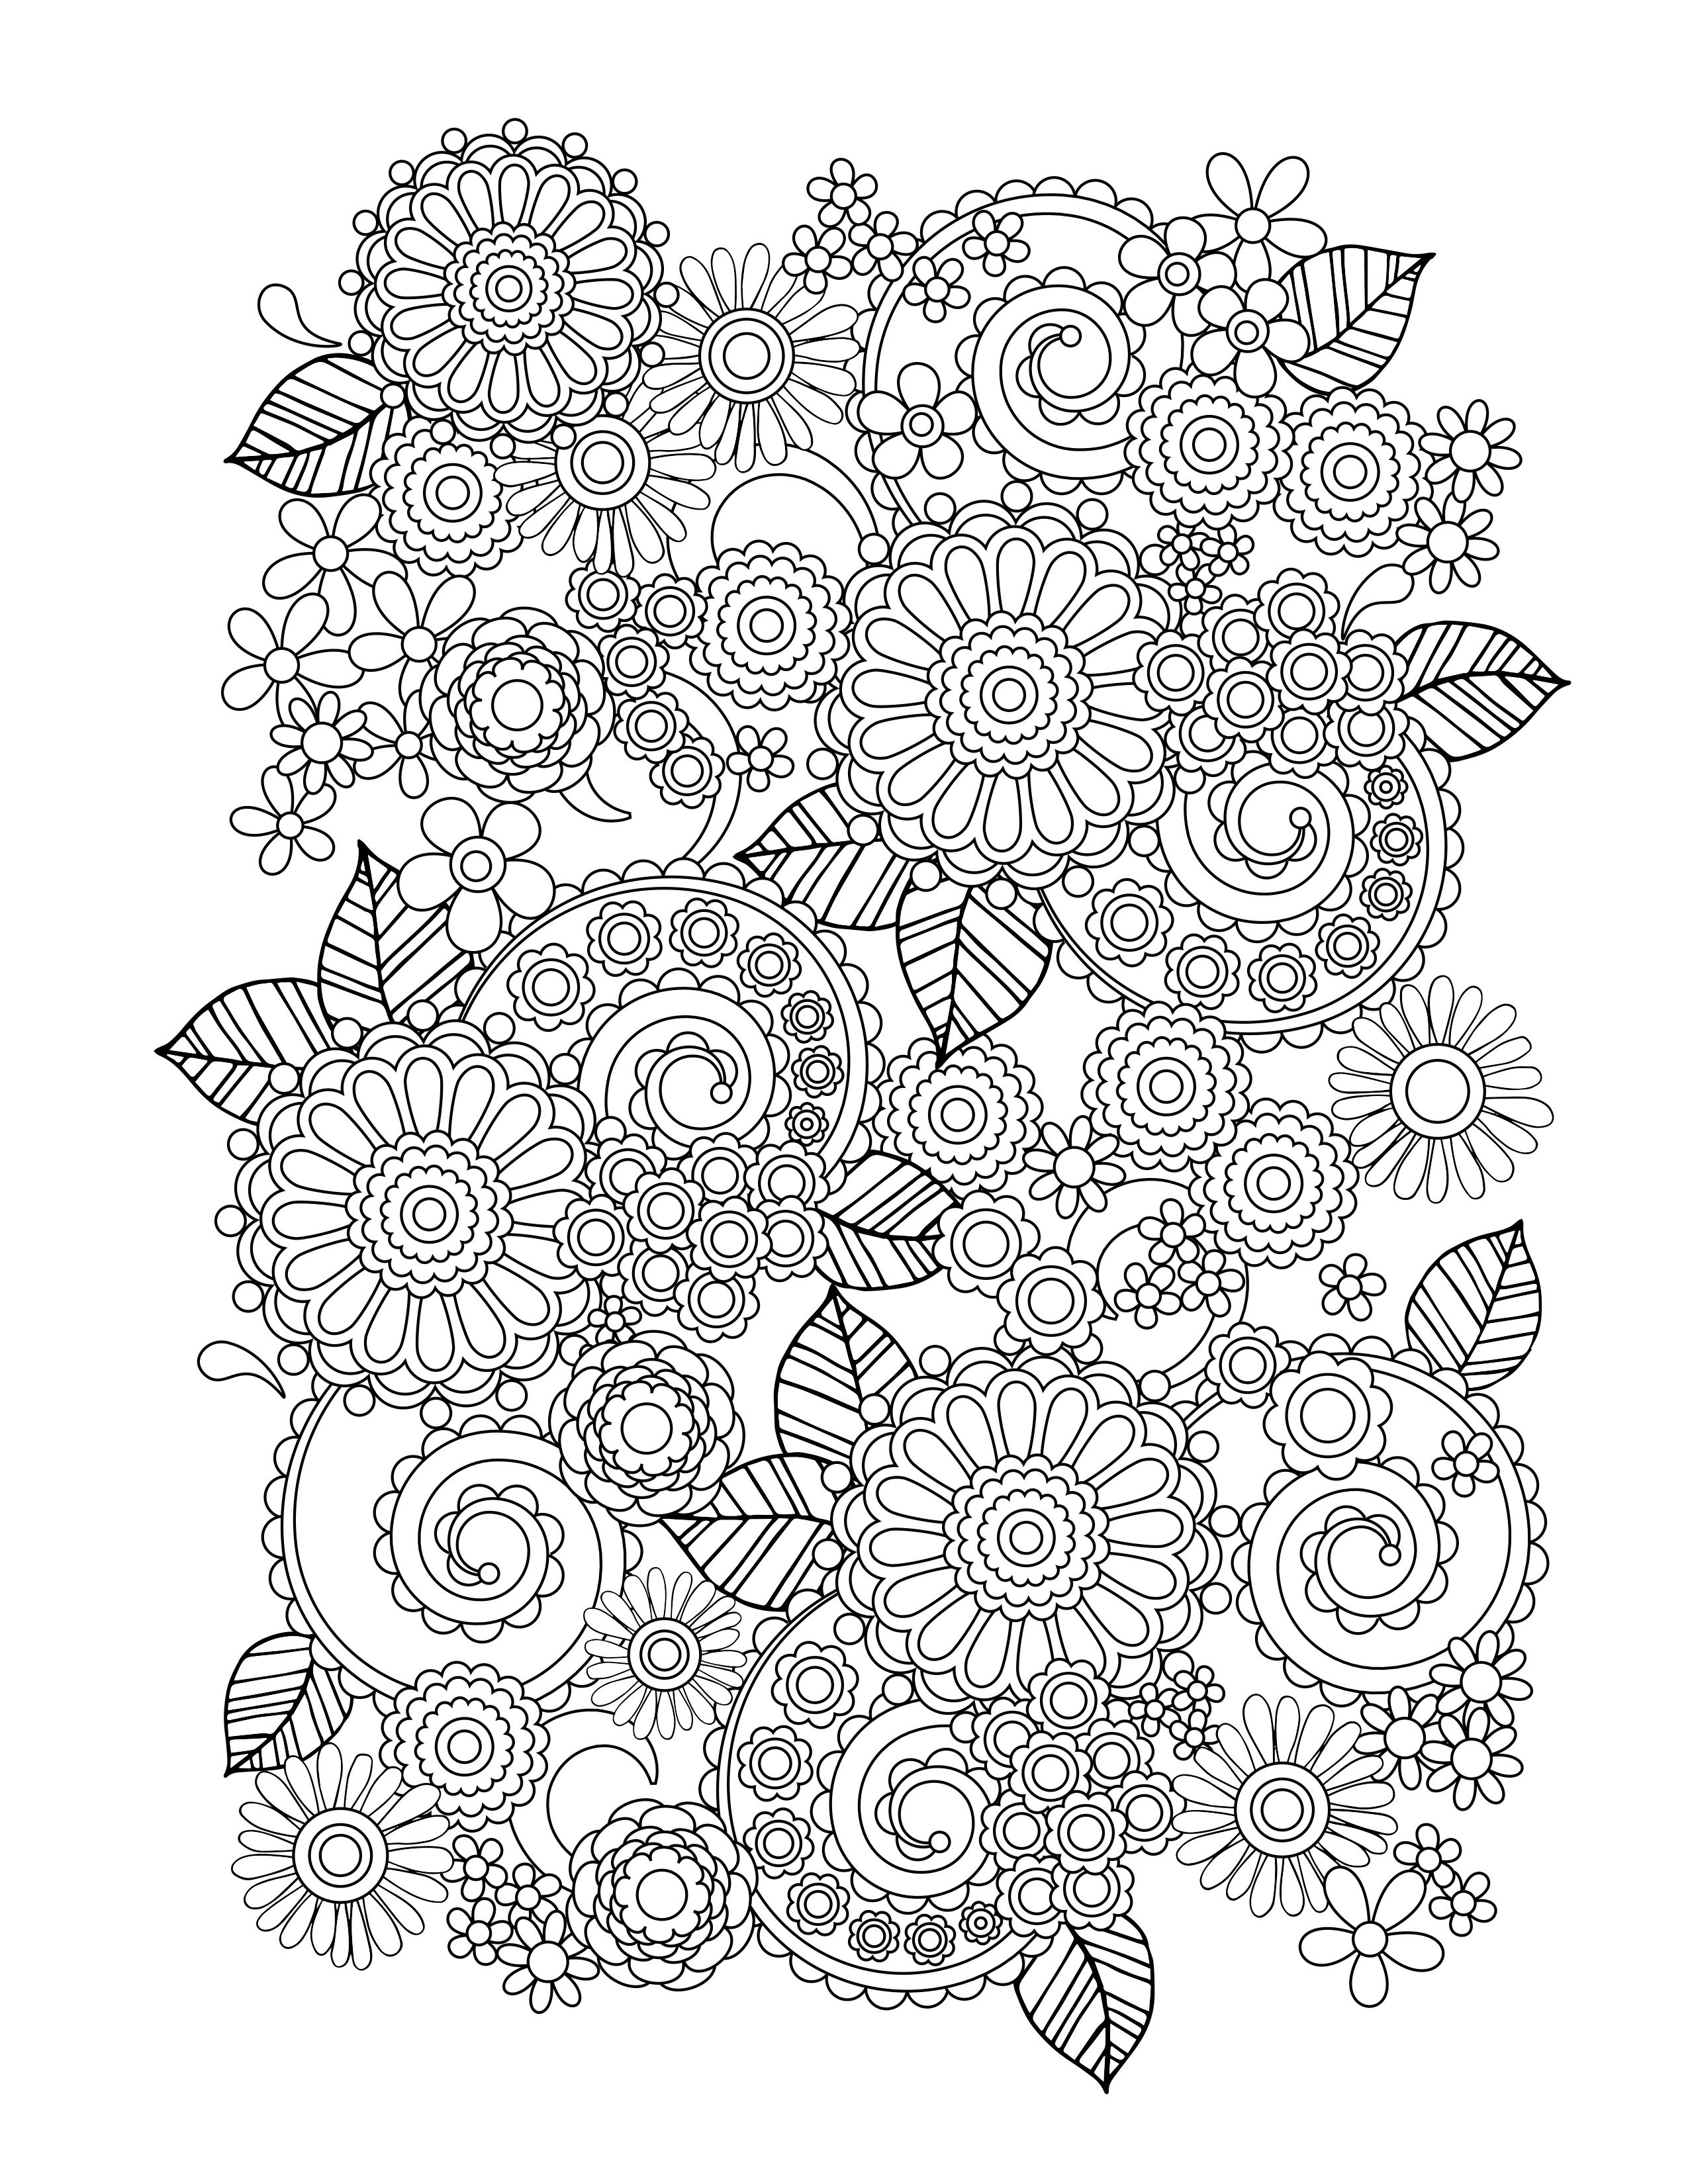 flowers color pages jasmine flower coloring pages at getcoloringscom free flowers color pages